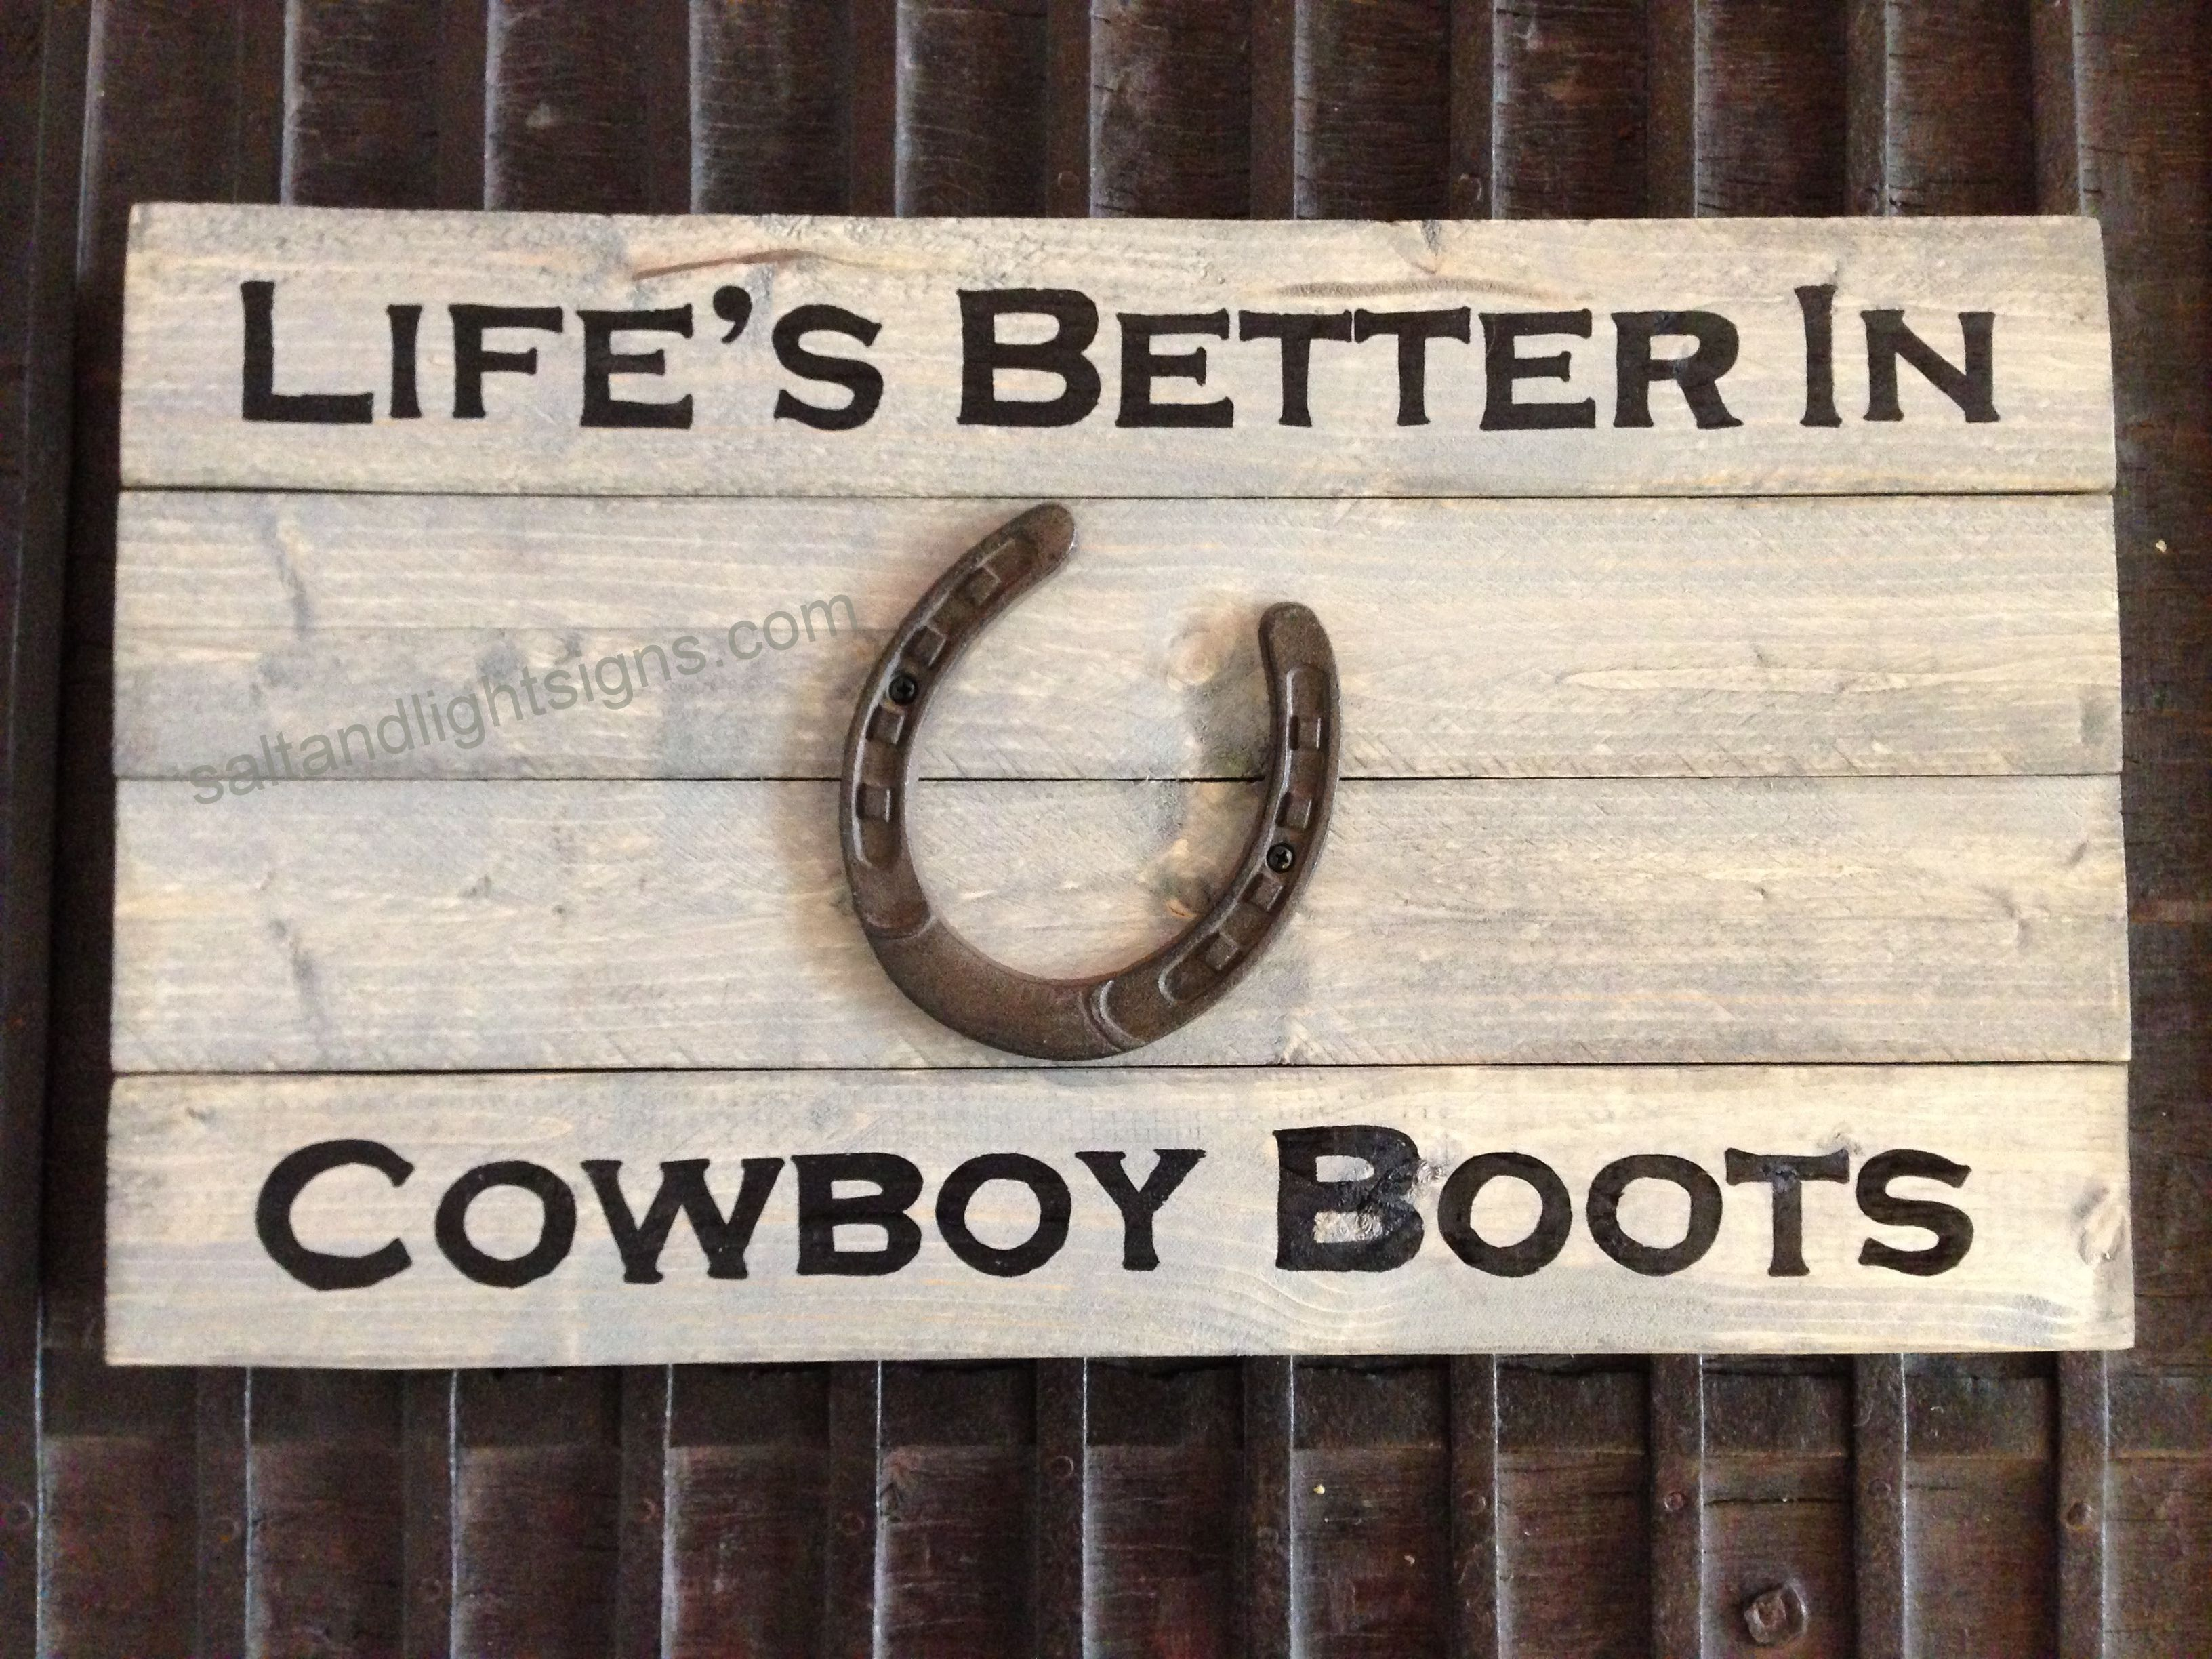 best 25 western signs ideas on pinterest country wedding saltandlightsigns com wooden cowboy country horseshoe sign